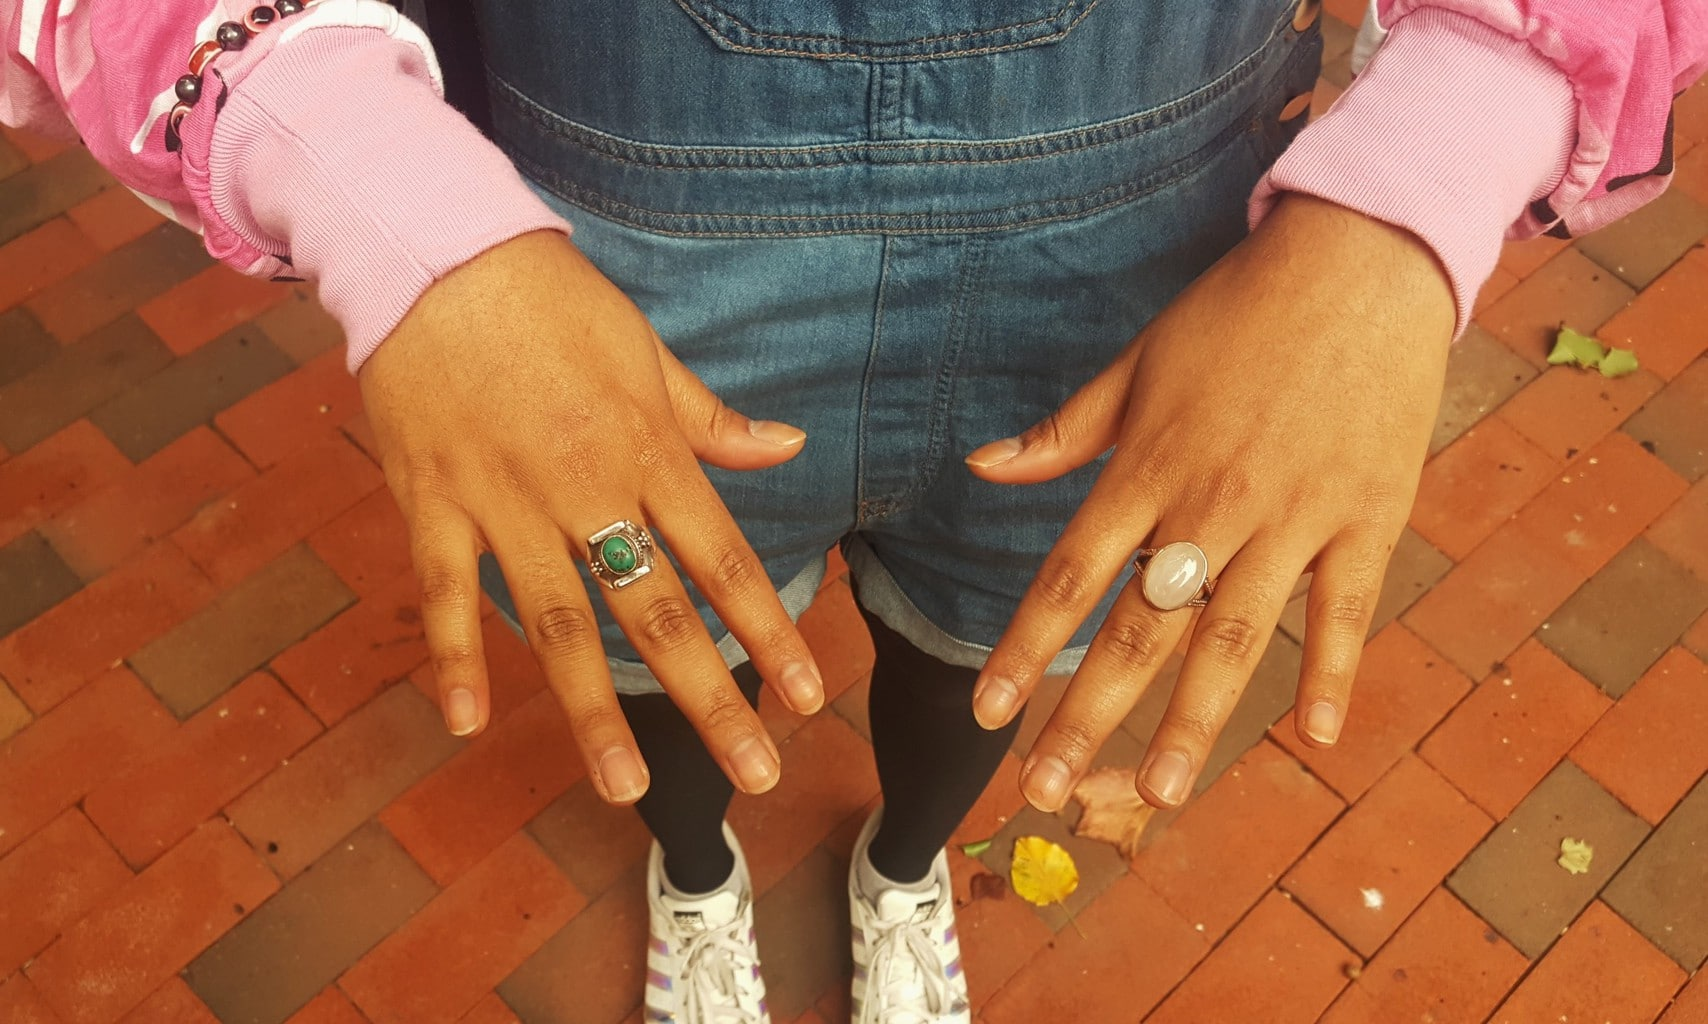 Barnard College student Alema sports mismatched accessories with a pink windbreaker jacket. Her oval opal ring and bright green vintage silver ring compliment her overall shorts.